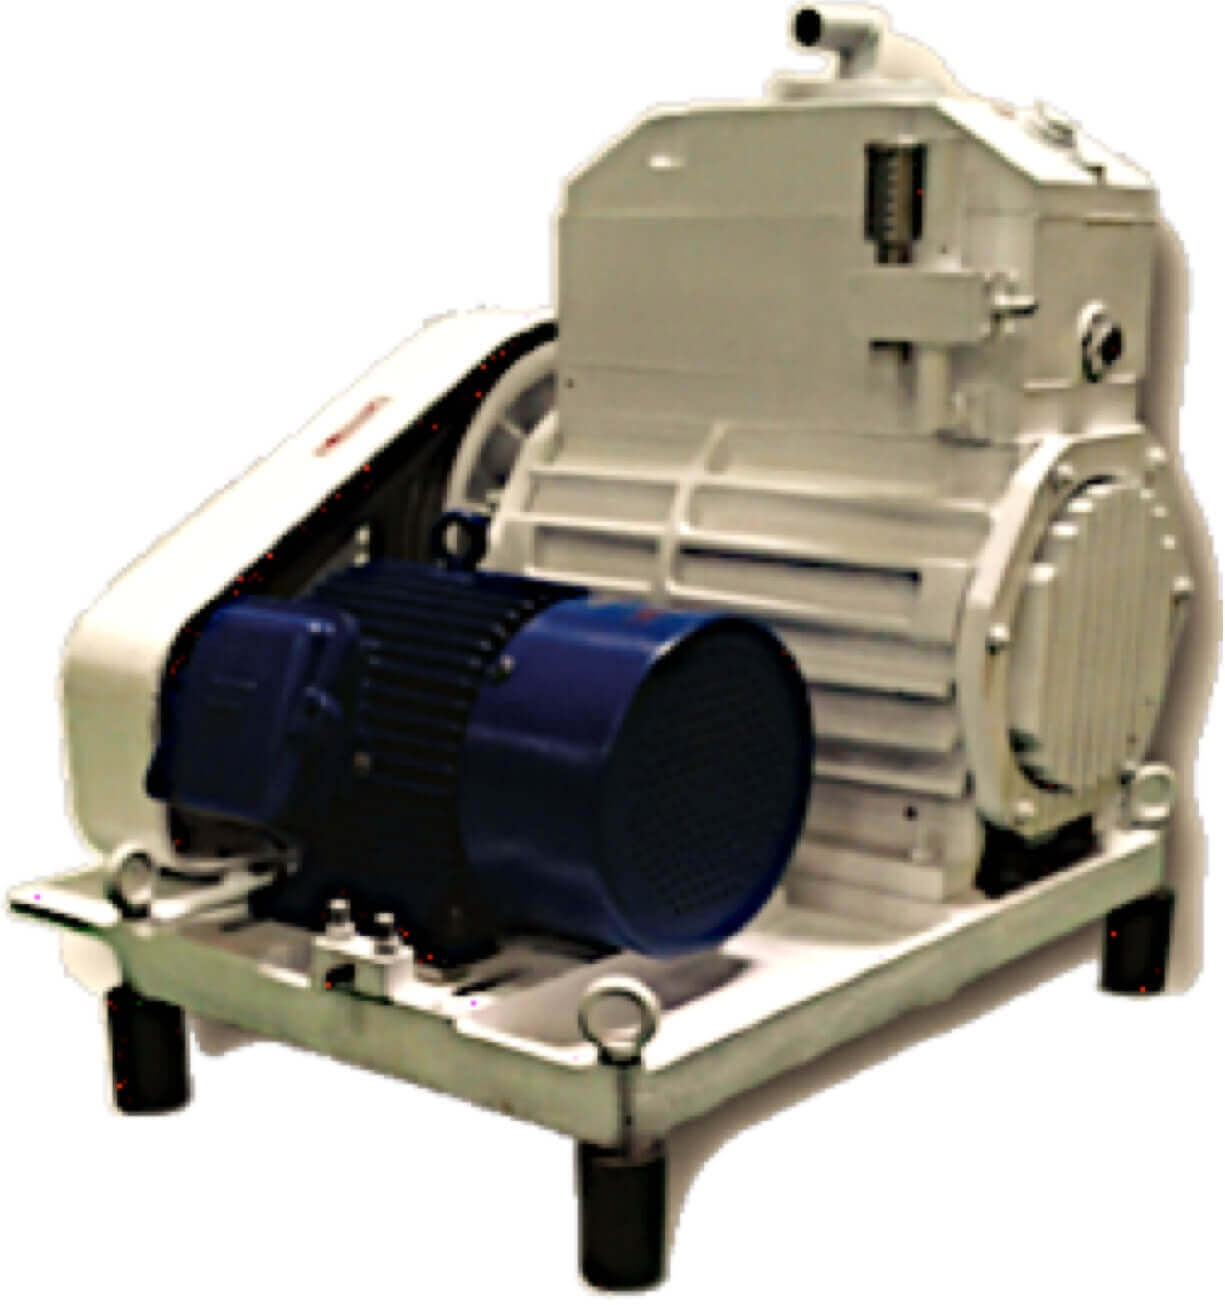 How Does Rotary Vane Vacuum Pumps Work Quora Pump Diagram Of Employing A Unique Design This Offers Superior While Providing Higher Resistance To Oil Contamination And Quieter Operation